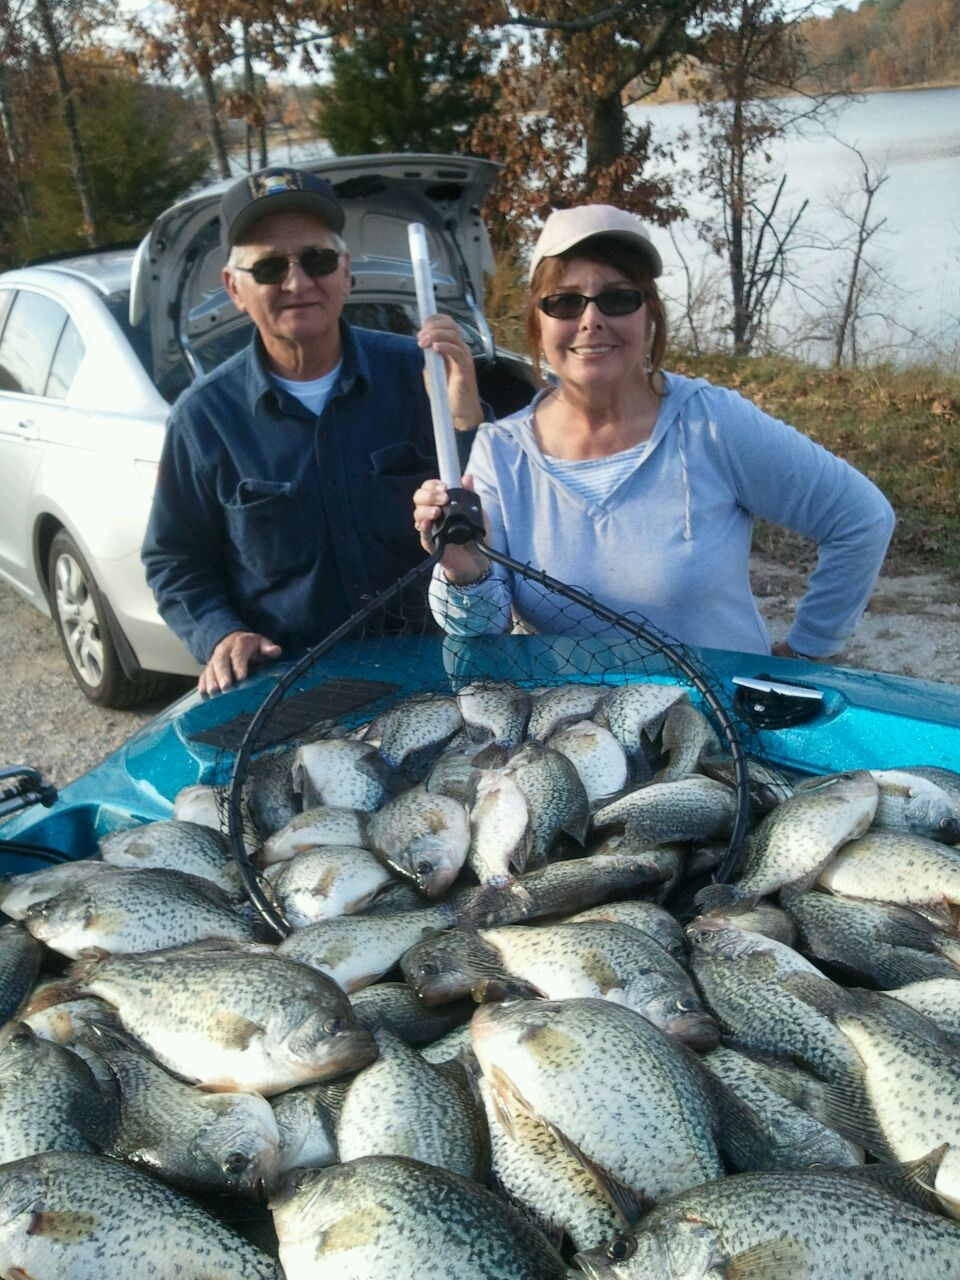 Kentucky lake fishing guide year round crappie fishing for Kentucky lake fishing guides